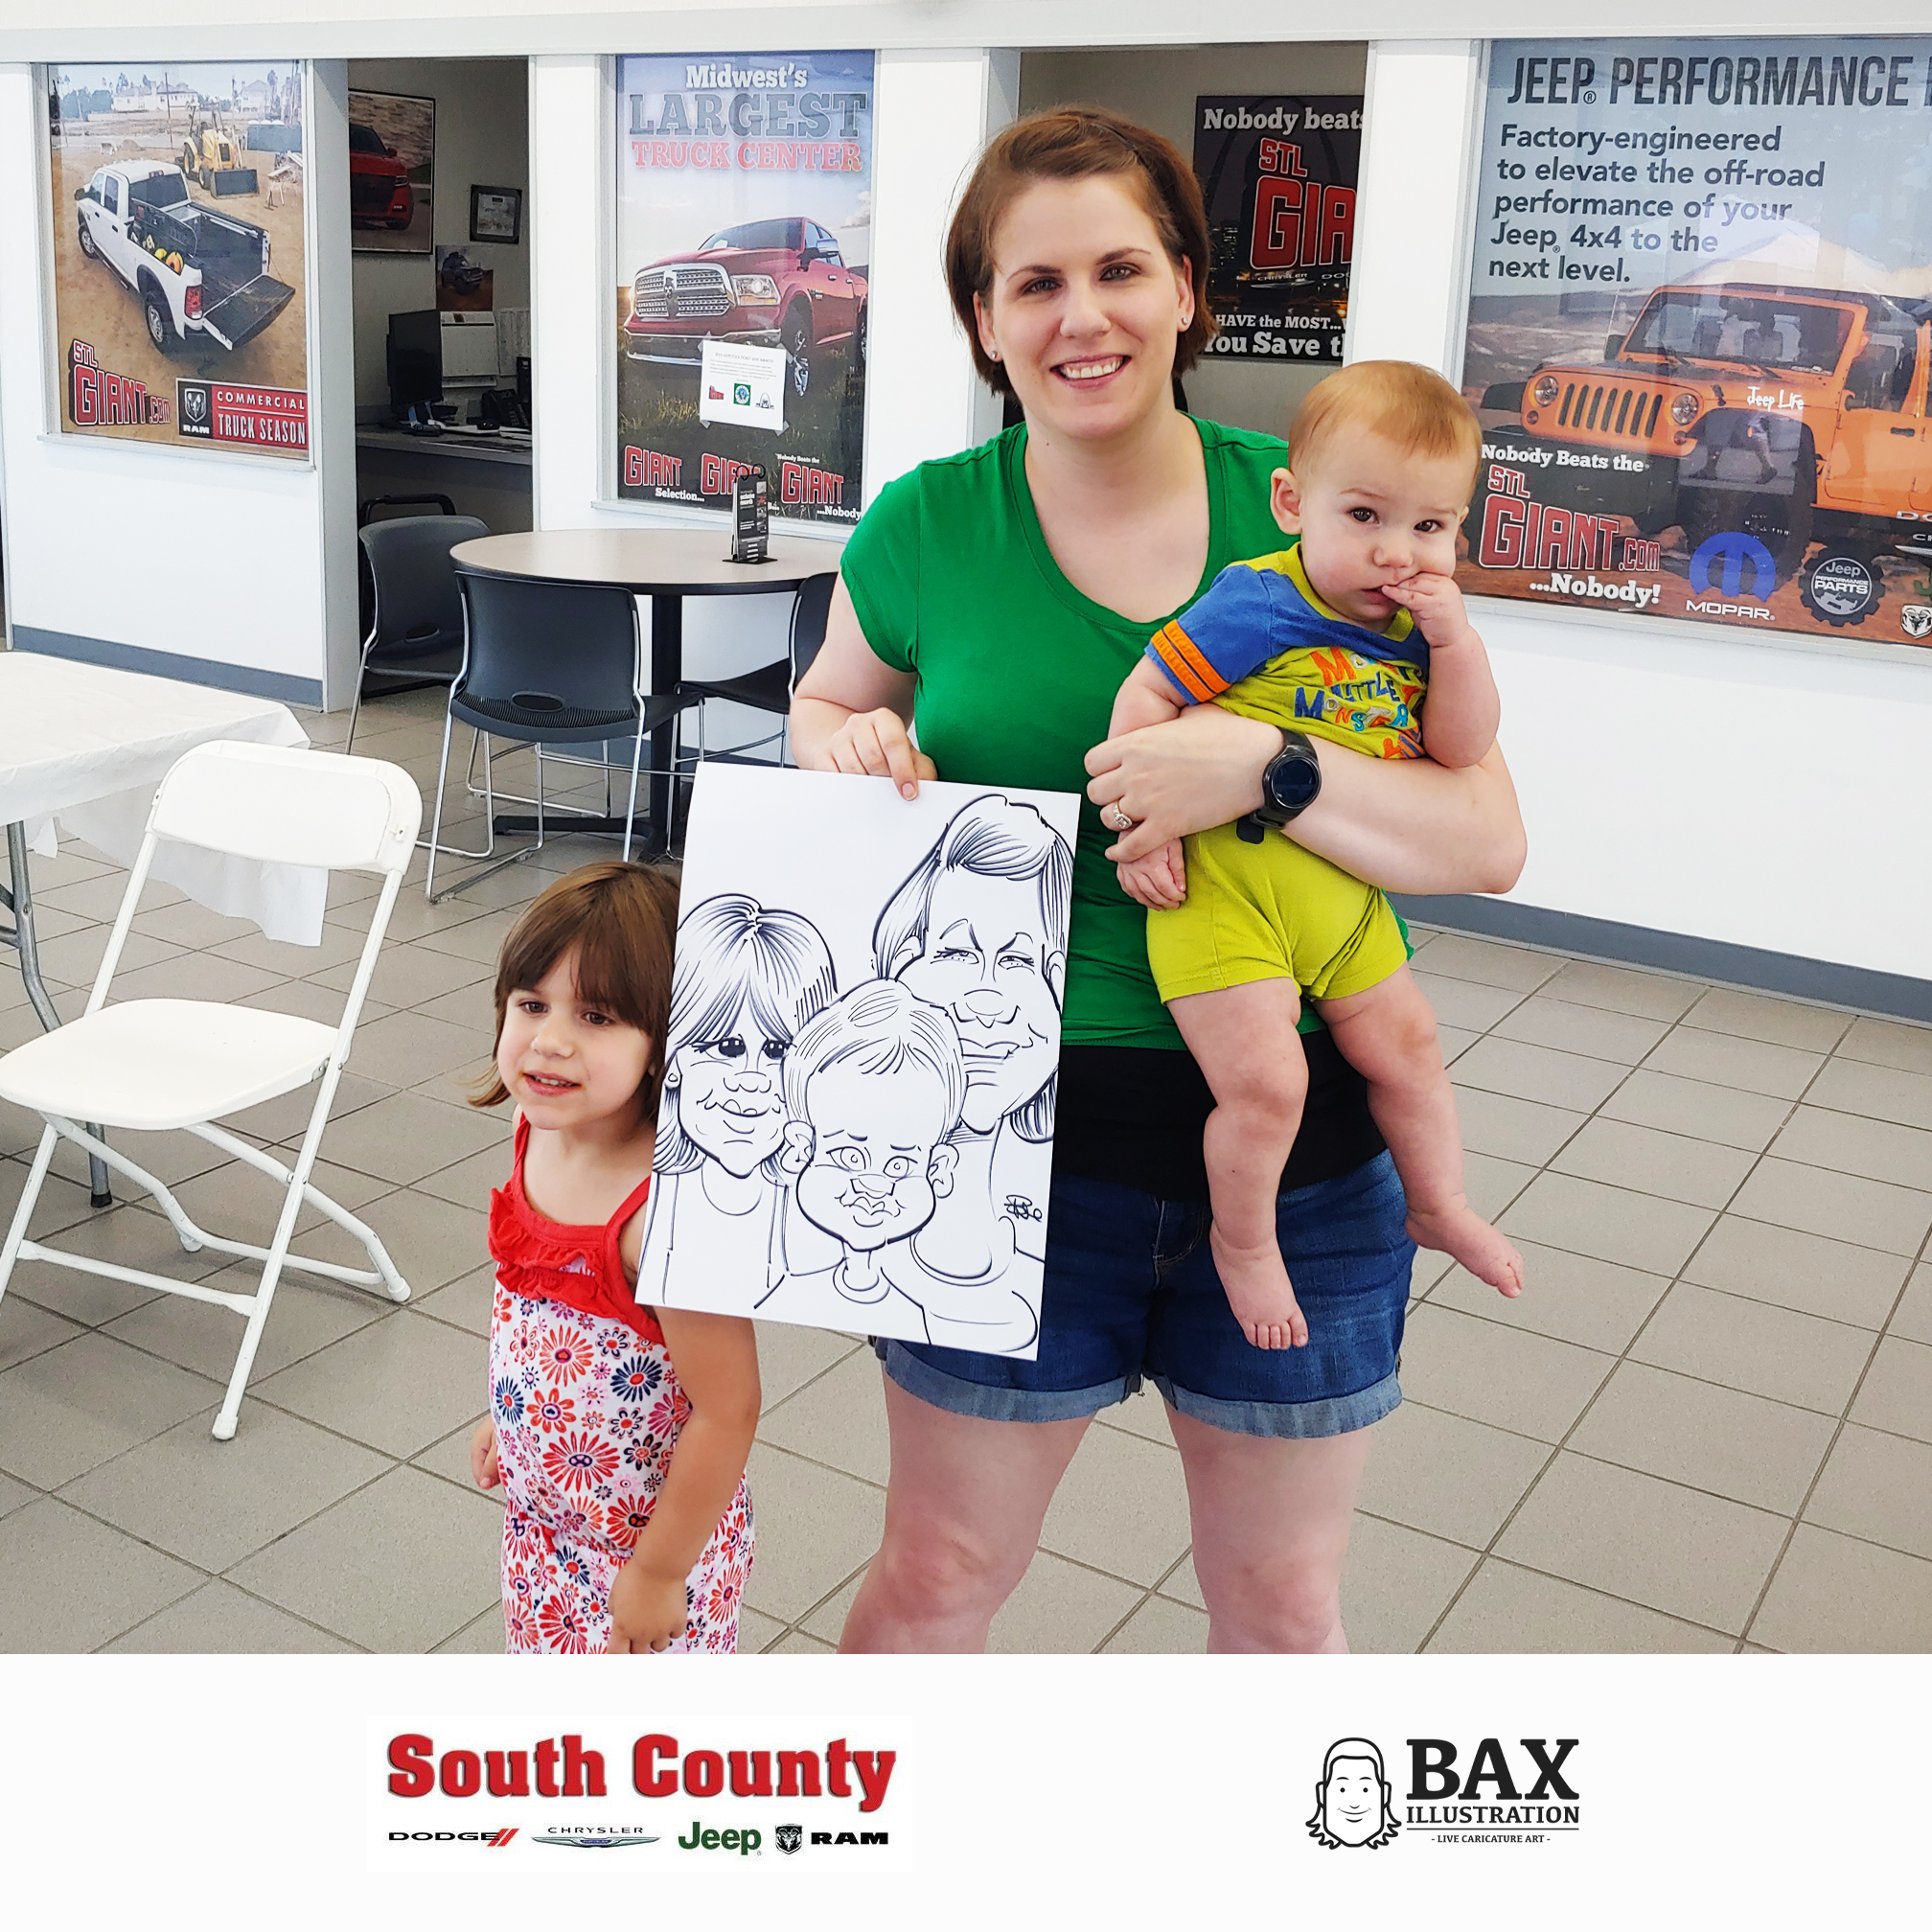 Woman with children holding caricature by Bax Illustration at South County Dodge Customer Appreciation Event in St. Louis